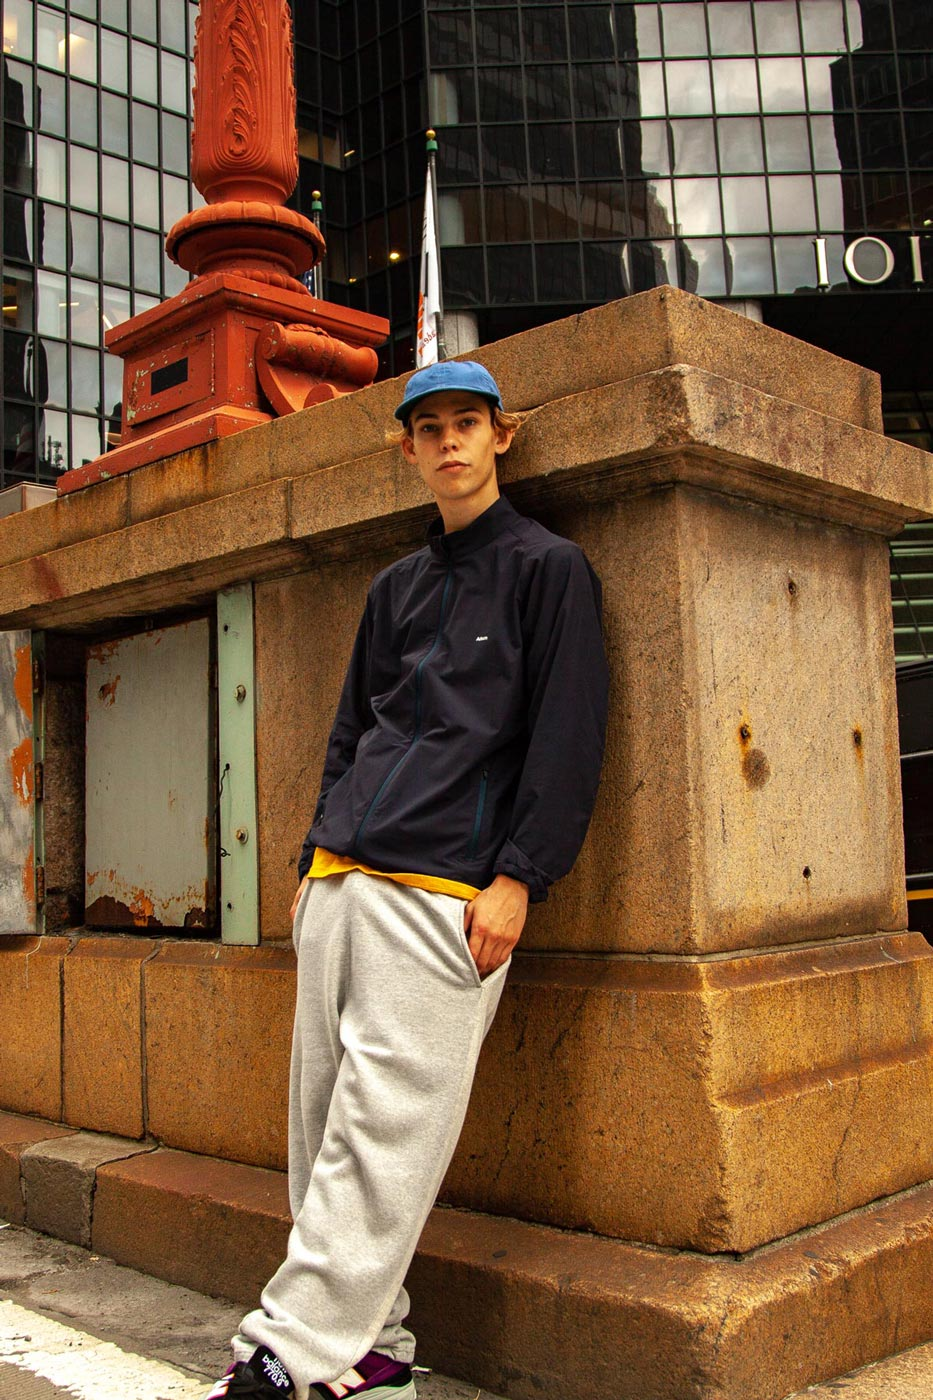 Wind Jacket & OD Hats 3 - Adsum